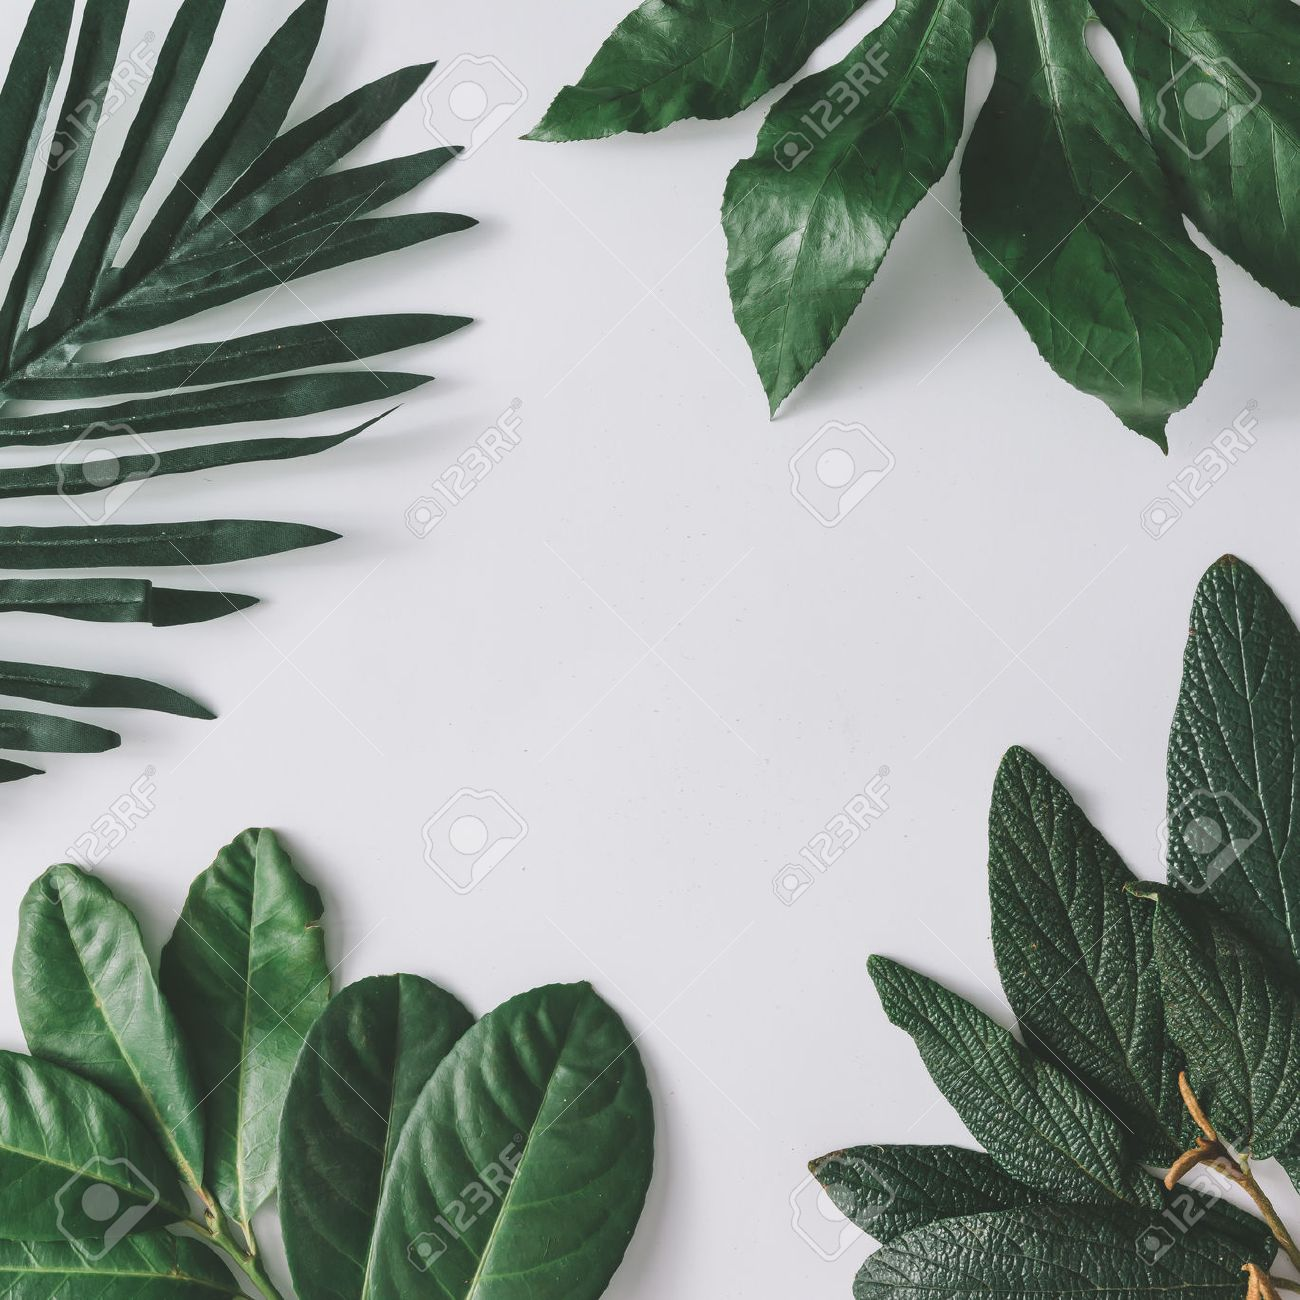 creative minimal arrangement of leaves on bright white background